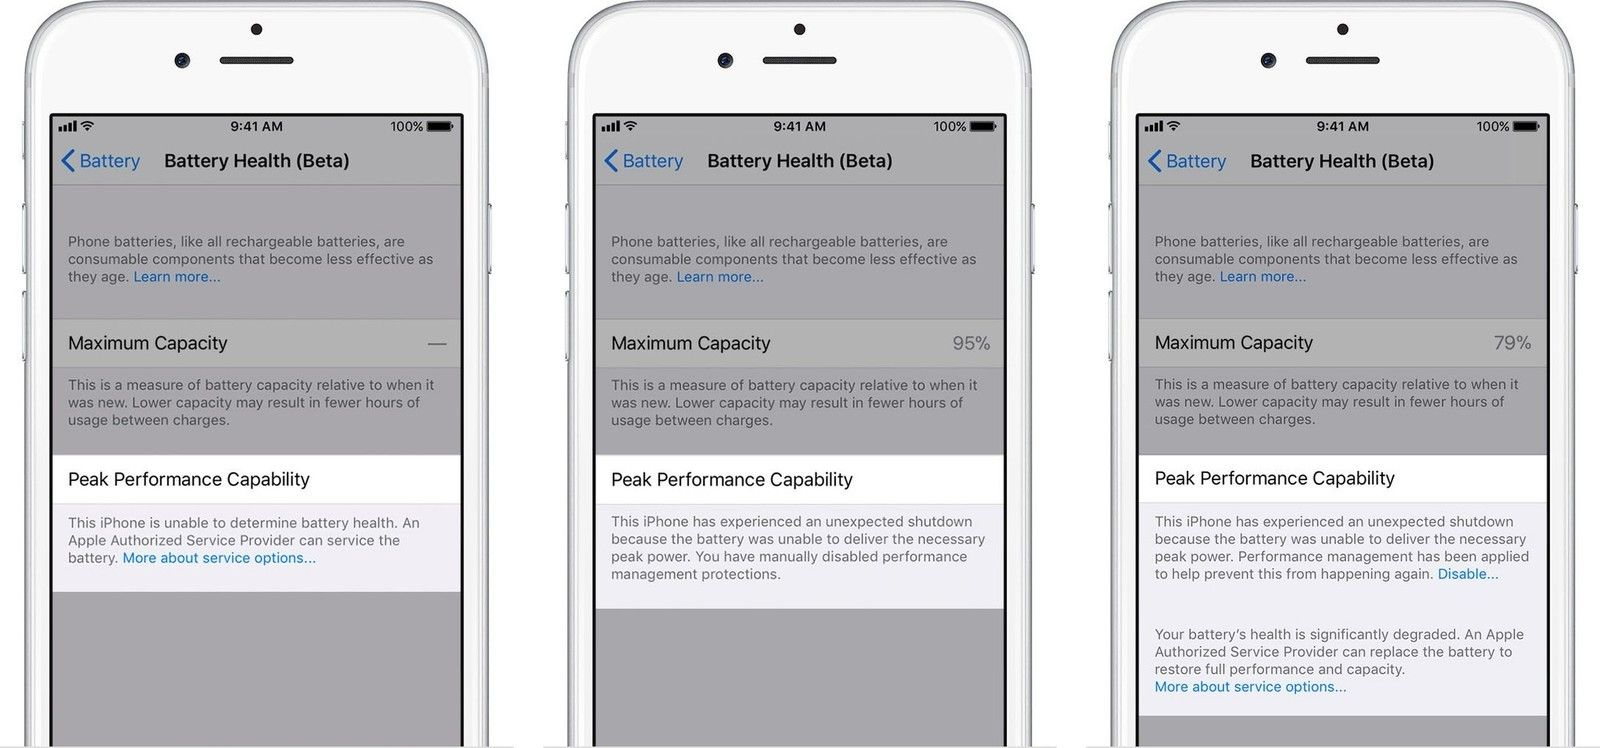 Check and Maintain Battery Health to Fix iOS 11.3 Issues